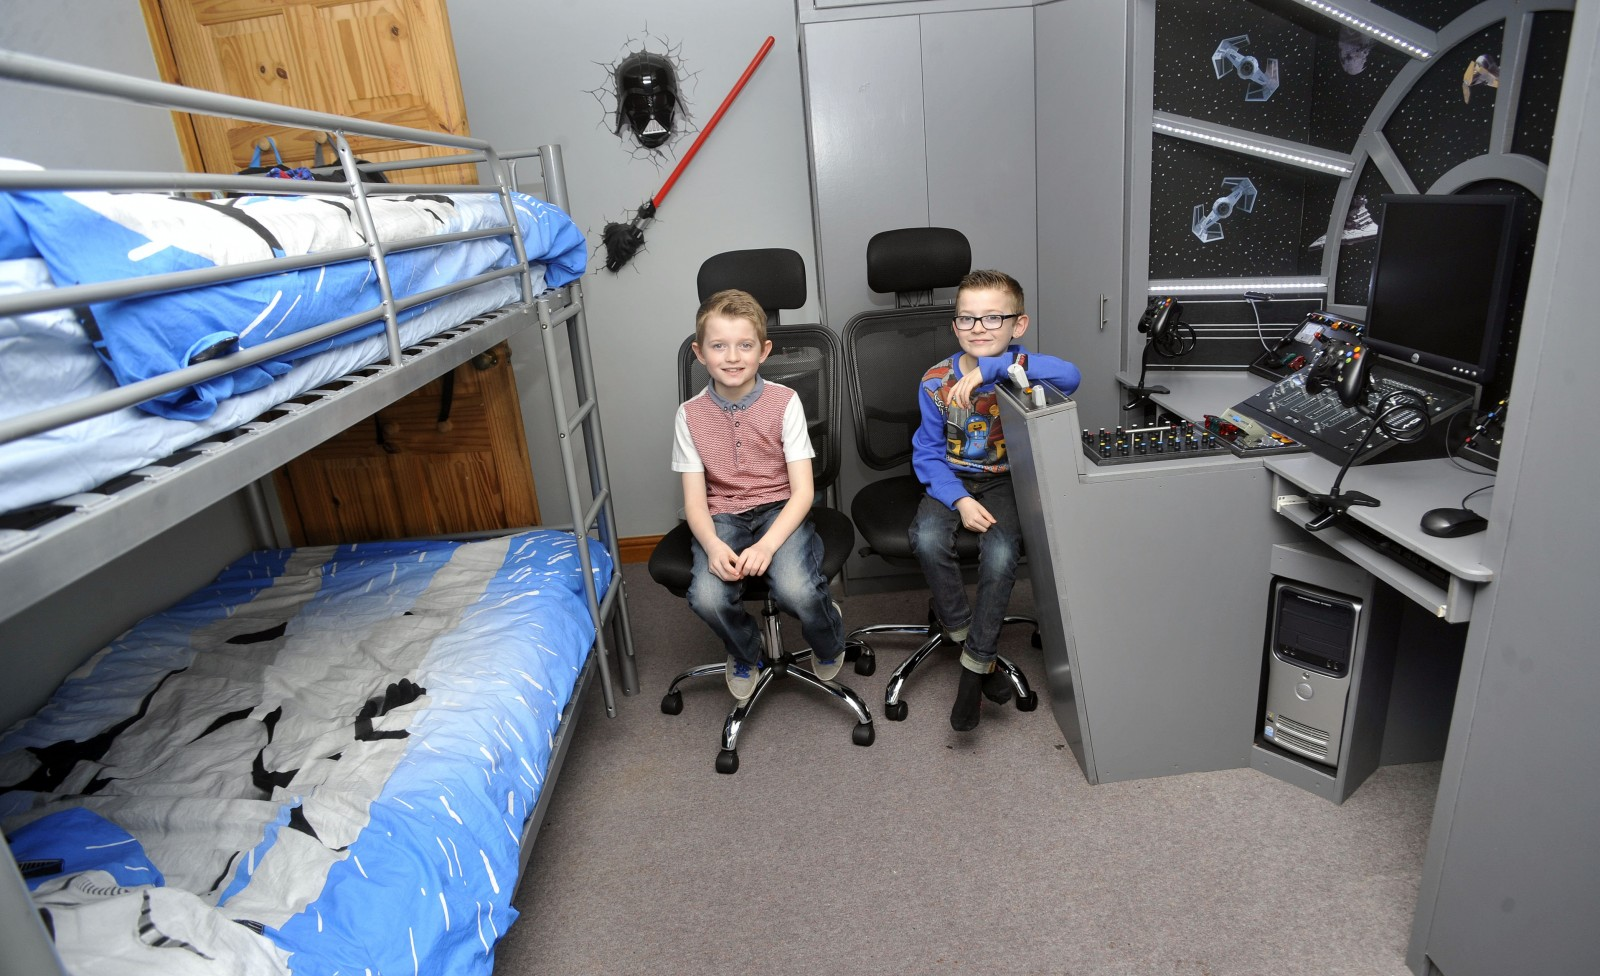 (L-R) Dylan and George in their Millennium Falcon bedroom in Thornton-Cleveleys, Lancs., See Ross Parry Copy RPYSTAR : A devoted dad gave his kids a present that was out of this world - by transforming their room into a life-size replica of a Star Wars SPACESHIP. David Bonney, 47, surprised his Star Wars superfan kids, Dylan, nine, and George, eight, with a new bedroom based on the iconic Millennium Falcon from the hit movie franchise. The father-of-five hid his efforts for a month from his two sons who had no idea their sci-fi fantasies were about to come to life. 9 March 2016.